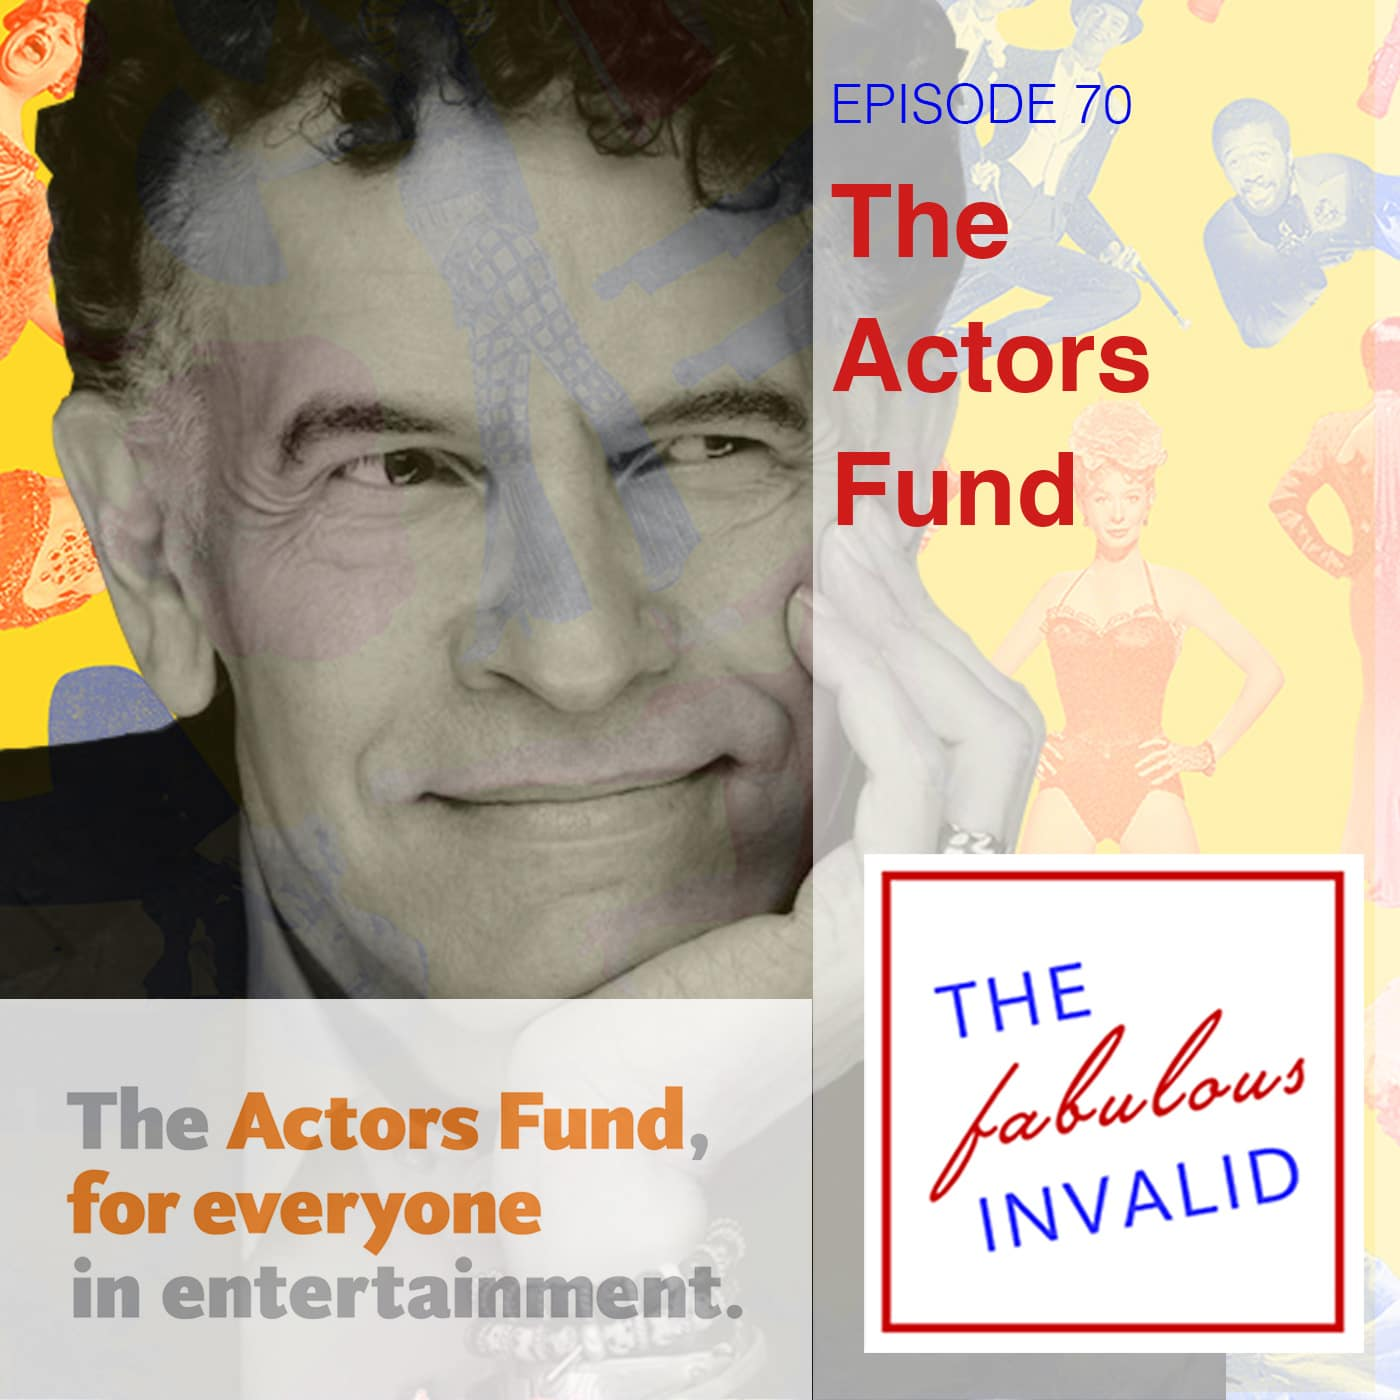 The Fabulous Invalid Episode 70: The Actors Fund